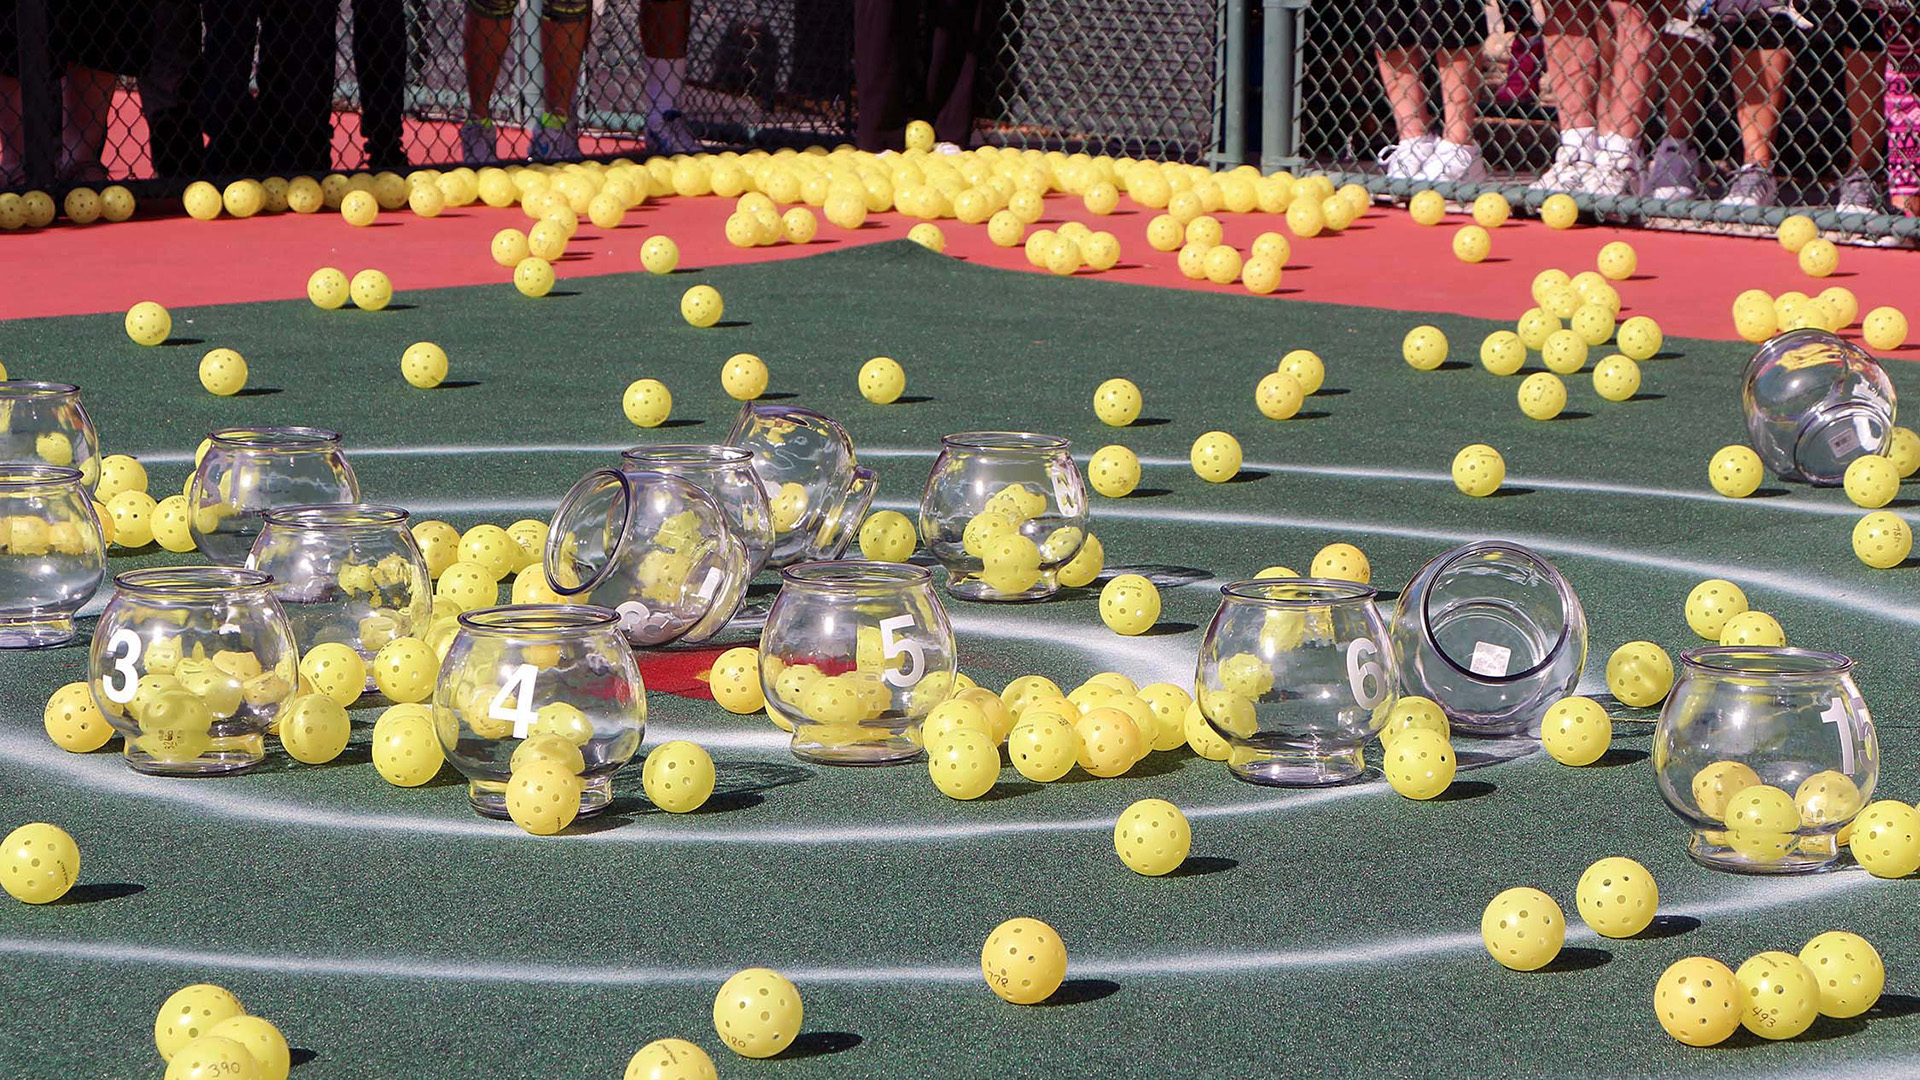 Look out below! Pickleballs to fall for charity this January